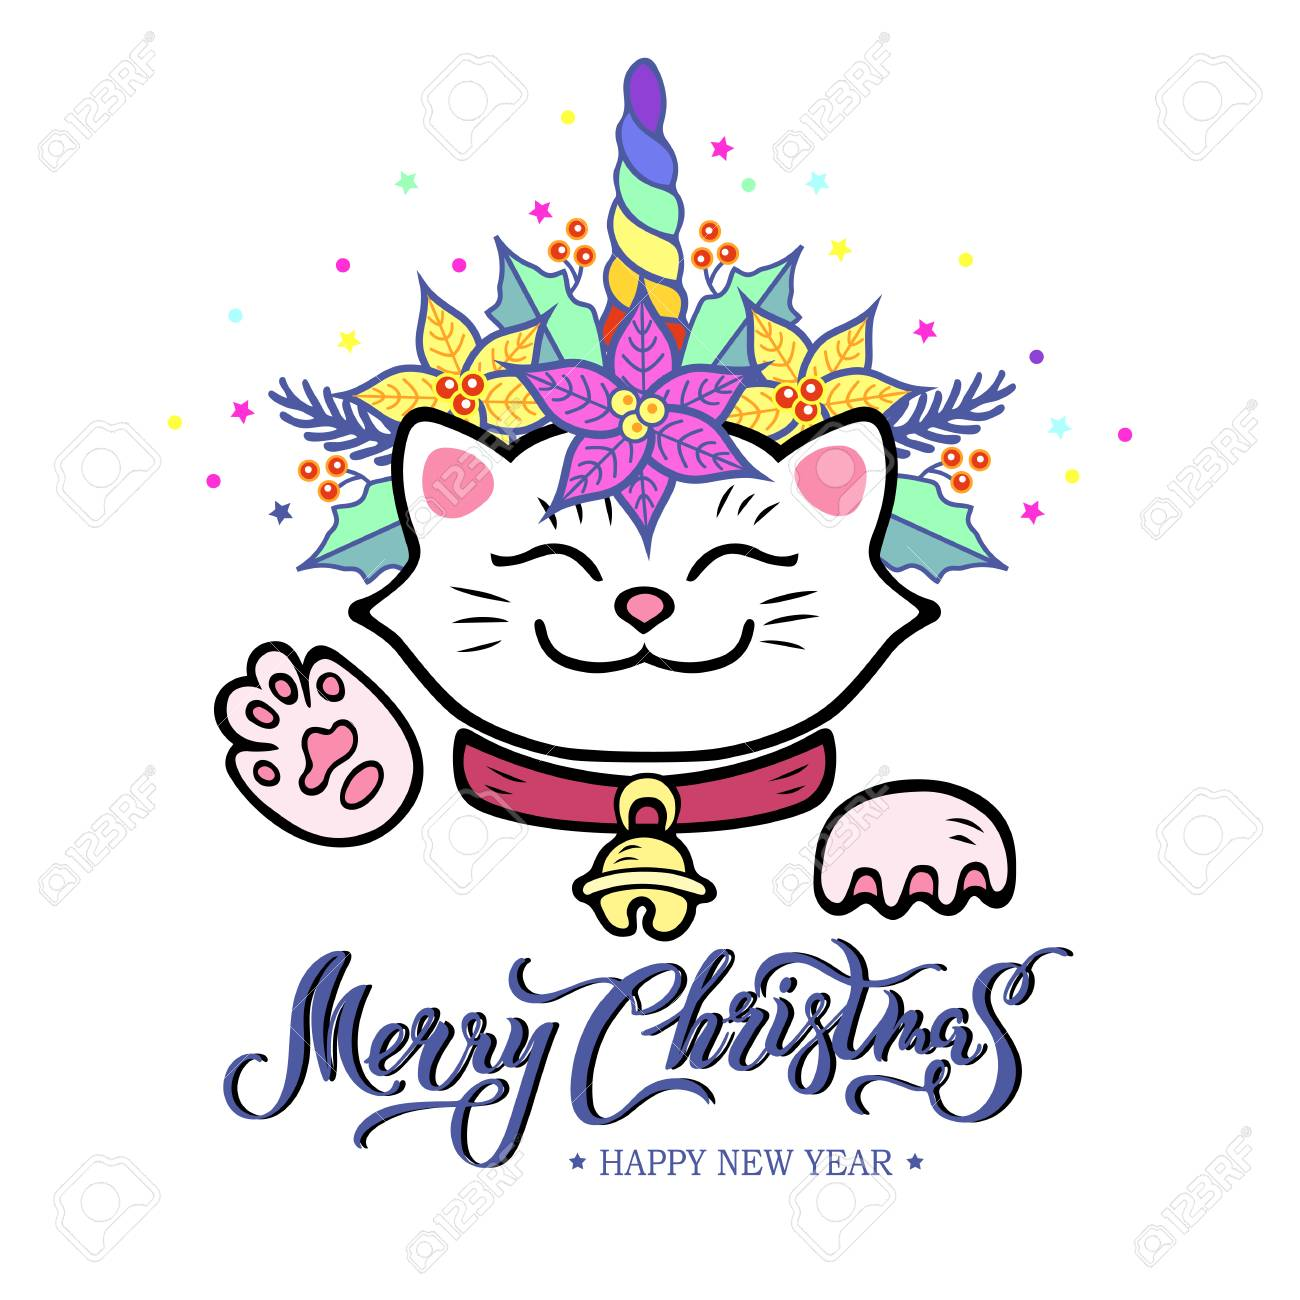 Funny Merry Christmas Card With Hand Drawn Lettering, Maneki ...